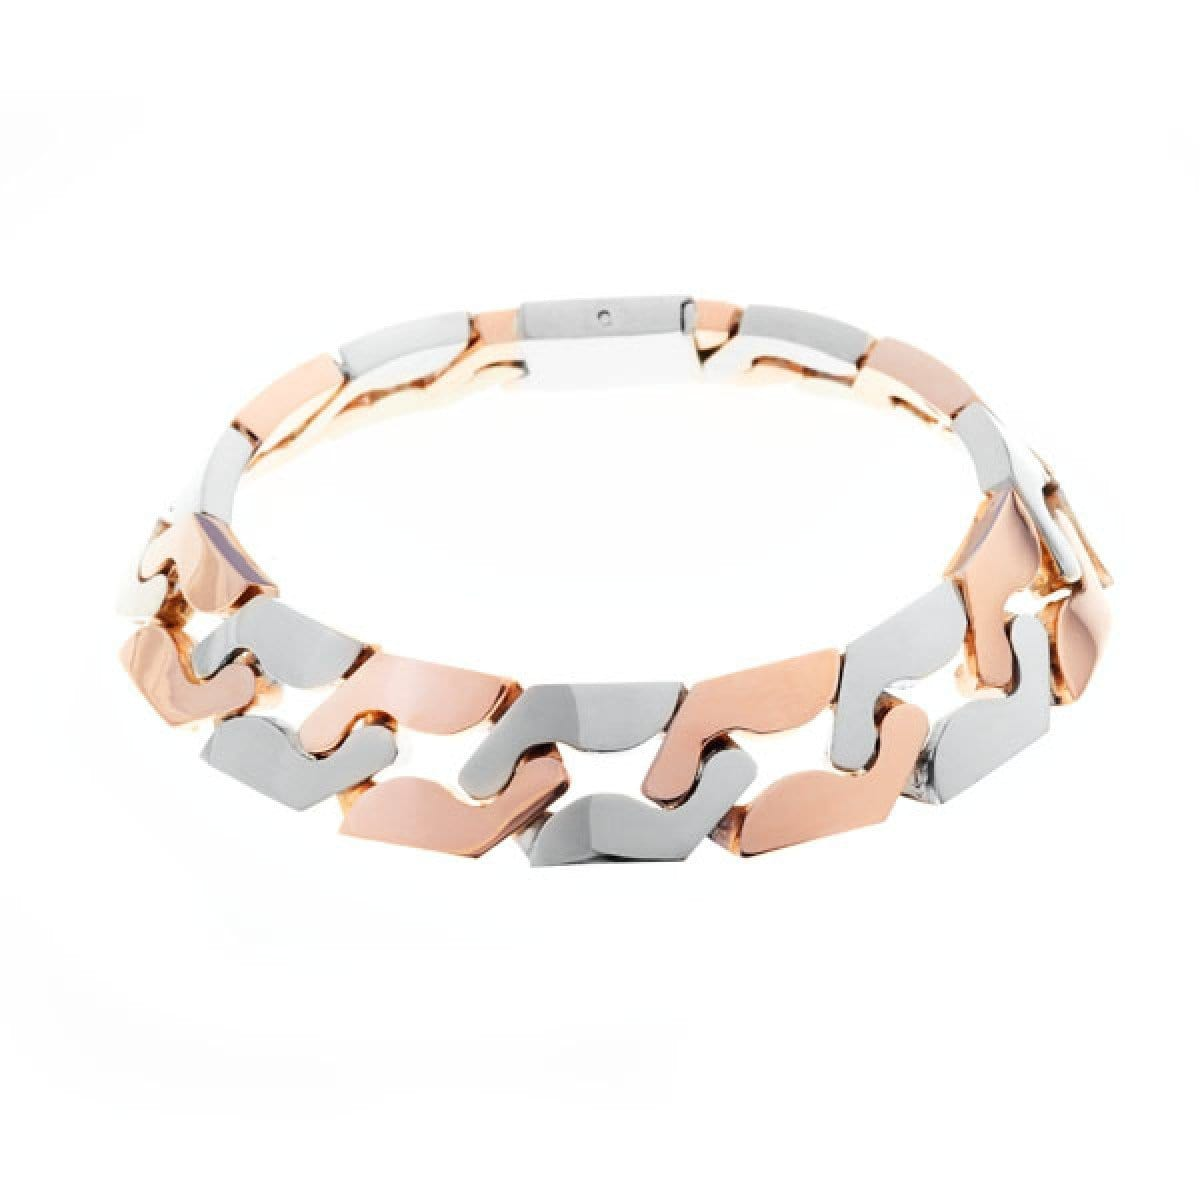 GOLD LINK TWO TONE CHOKER  NECKLACE - Chris Aire Fine Jewelry & Timepieces